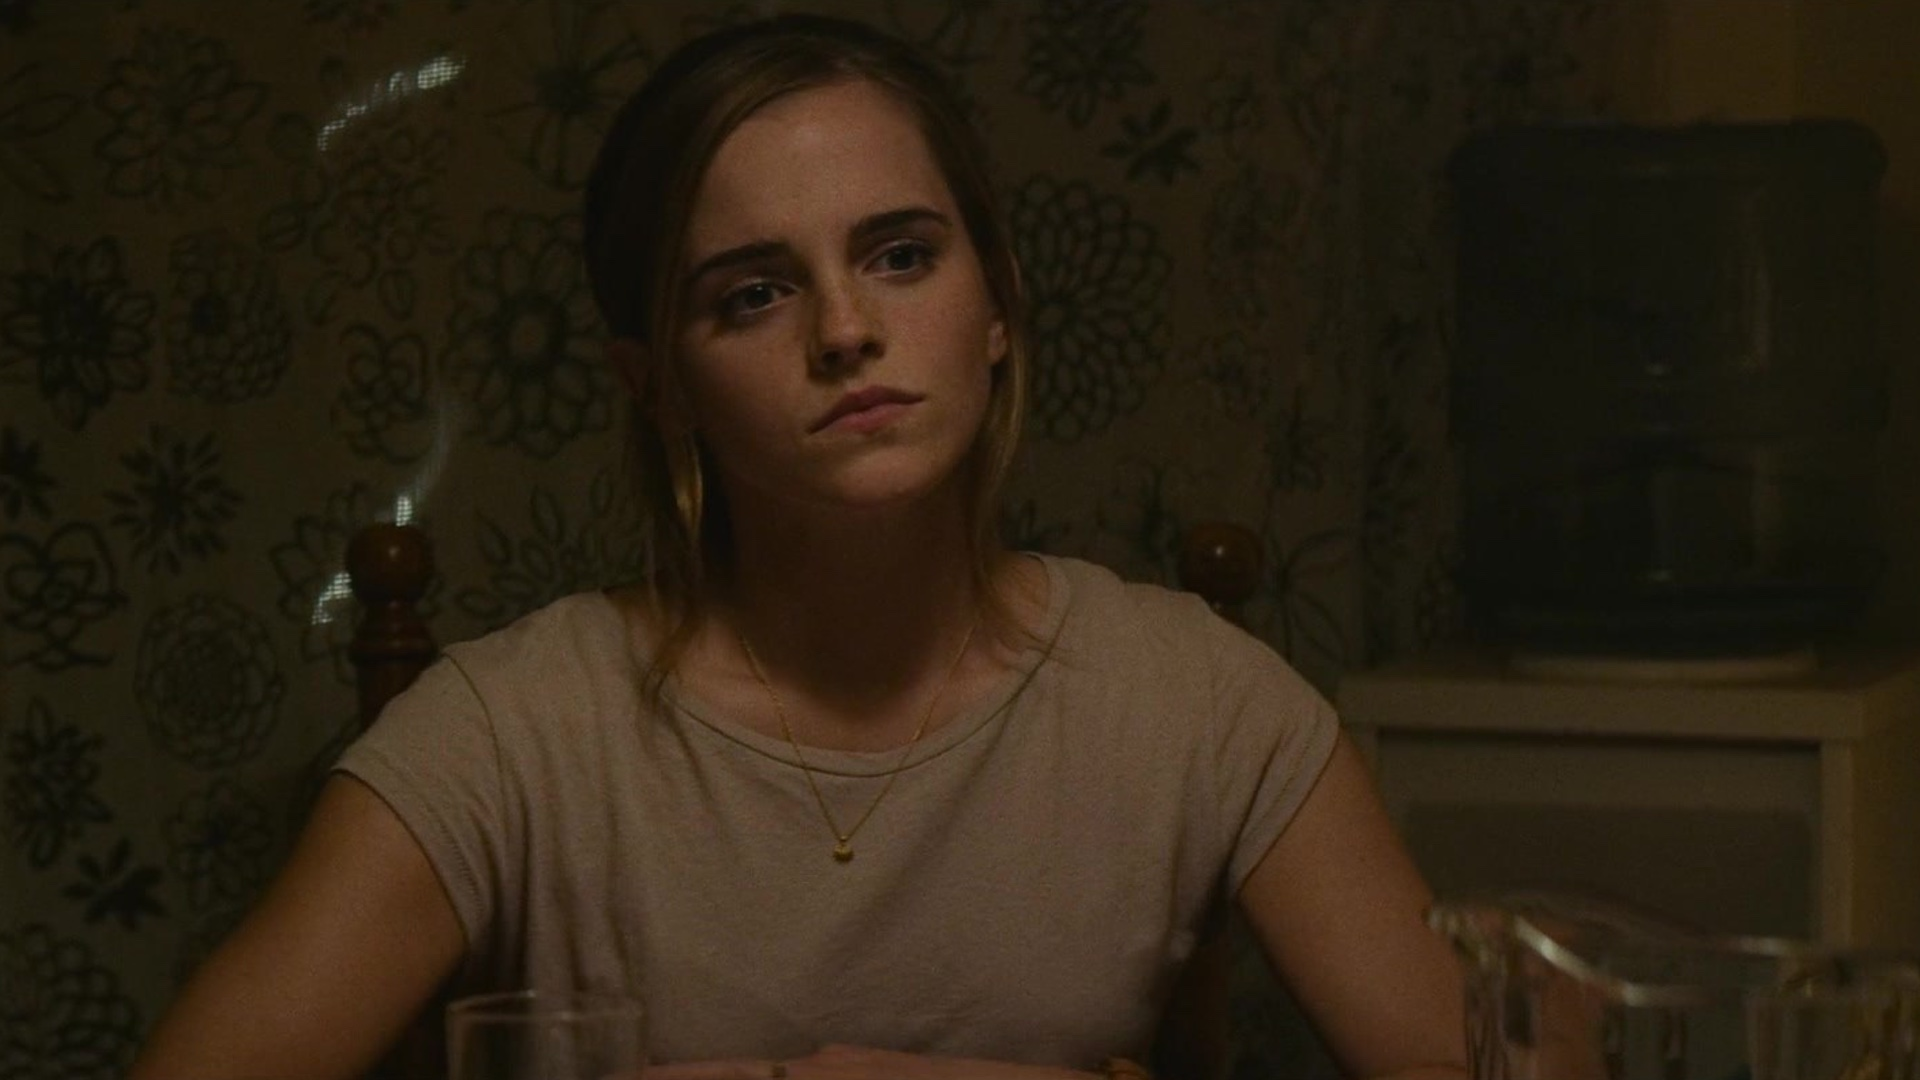 Marvel Is Reportedly Looking At Casting Emma Watson In Black